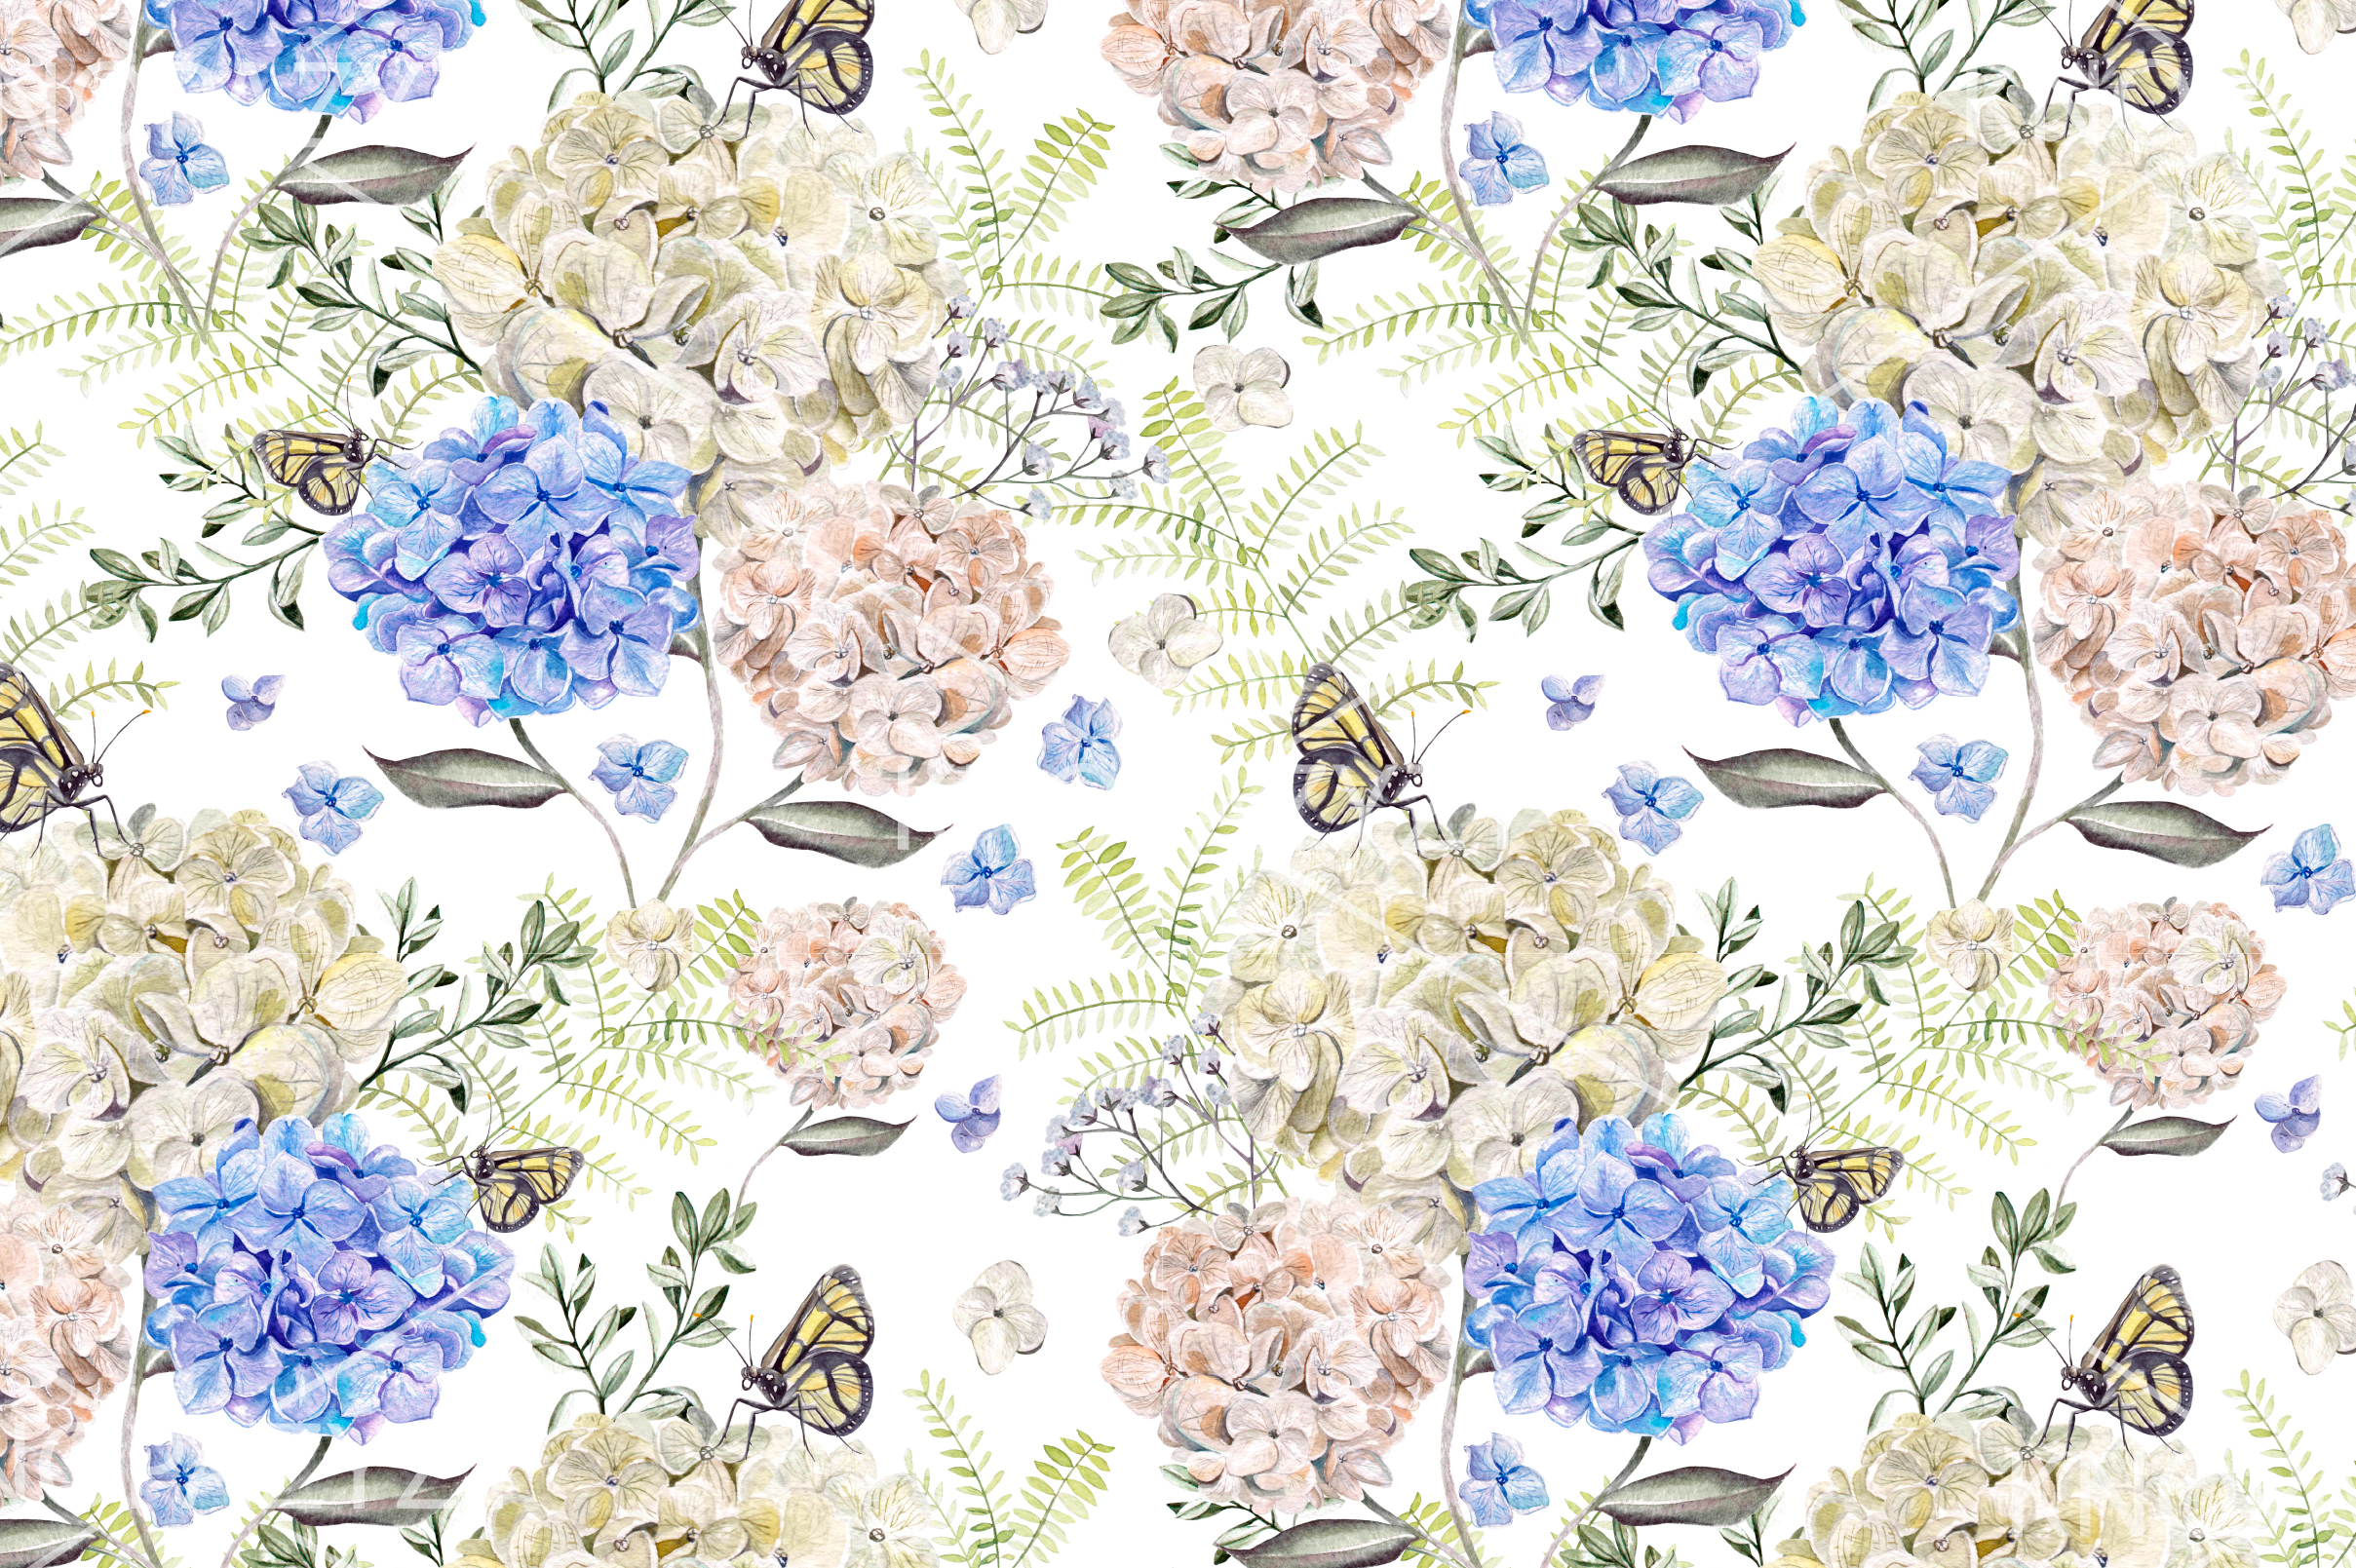 6 Hand Drawn Watercolor PATTERNS example image 5